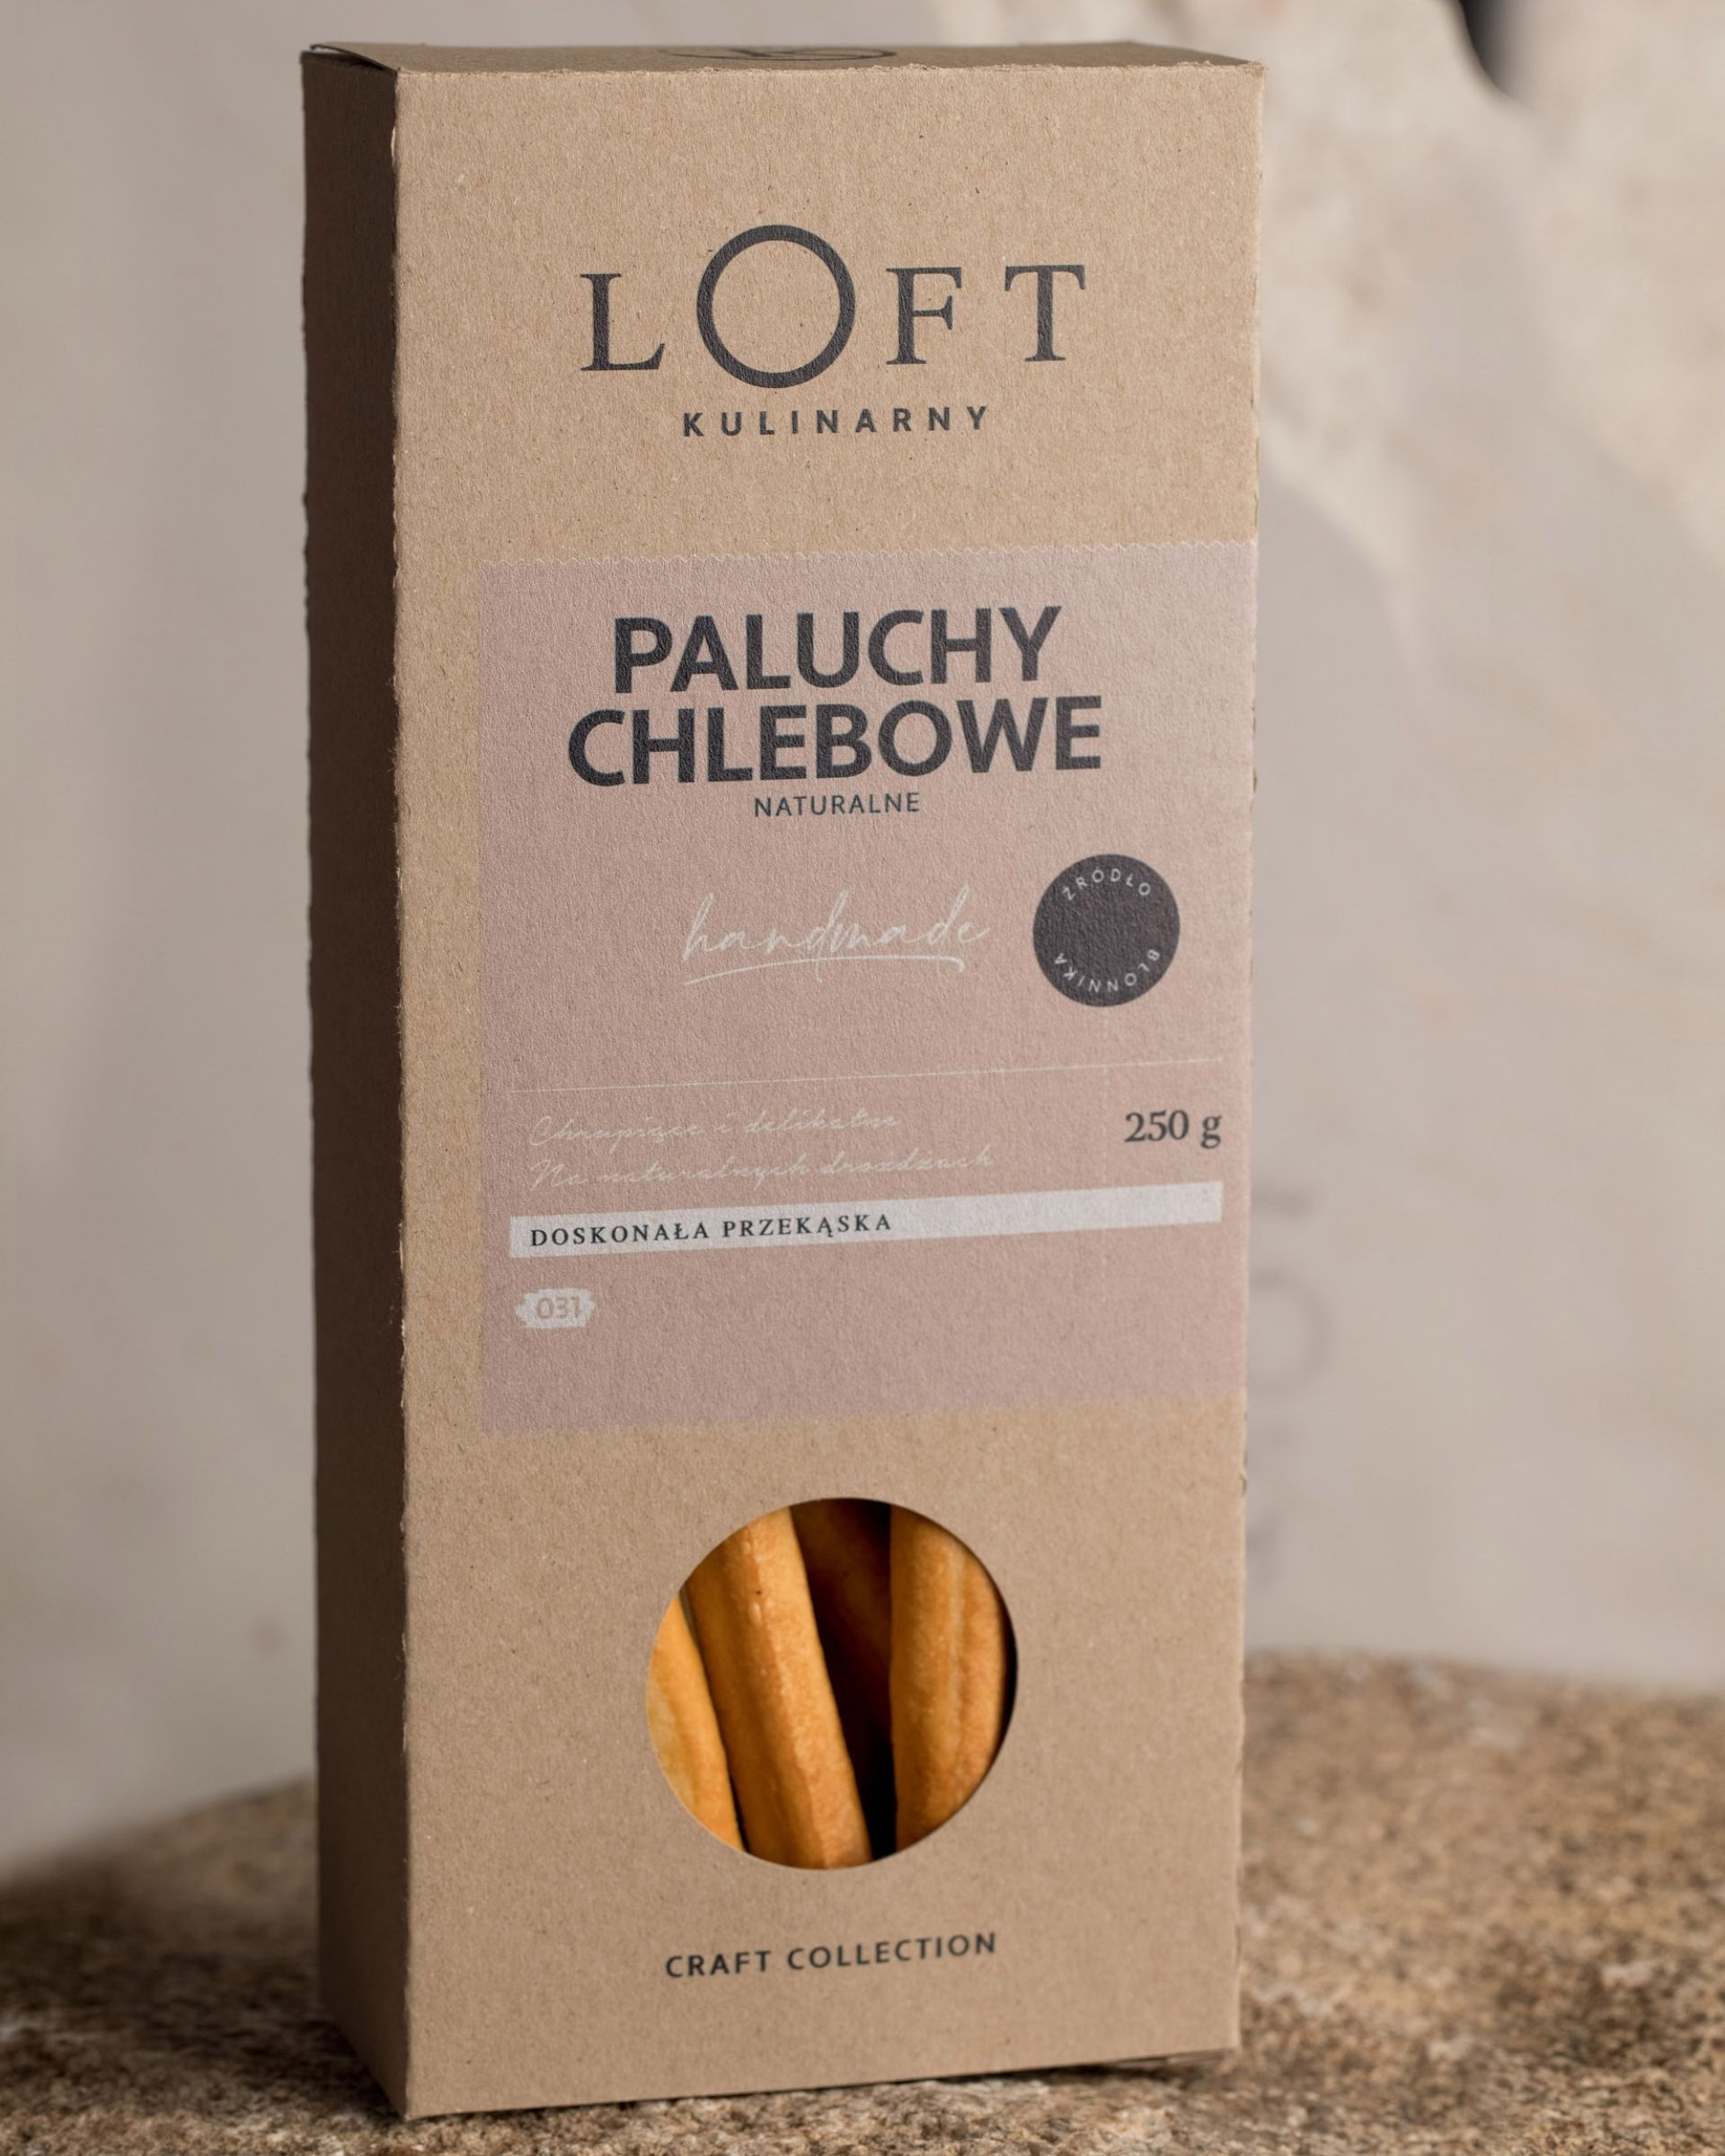 Paluchy chlebowe naturalne